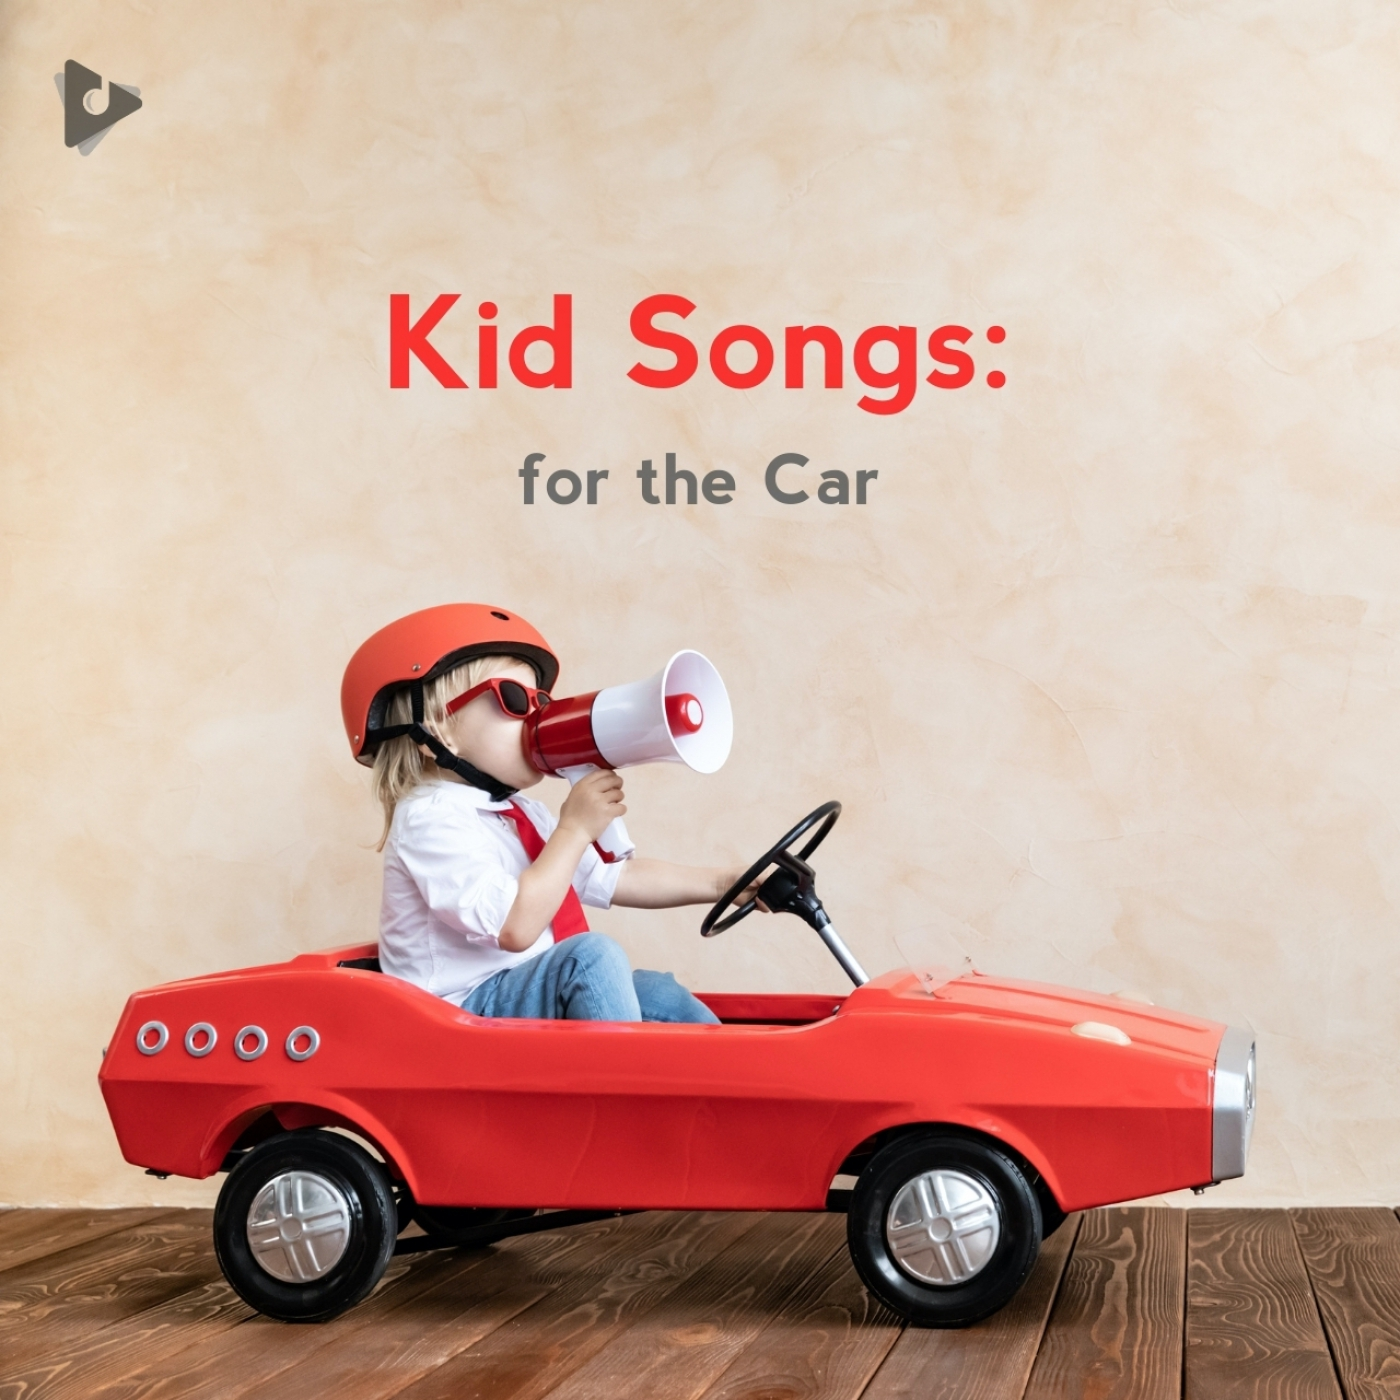 Kids Songs: for the Car